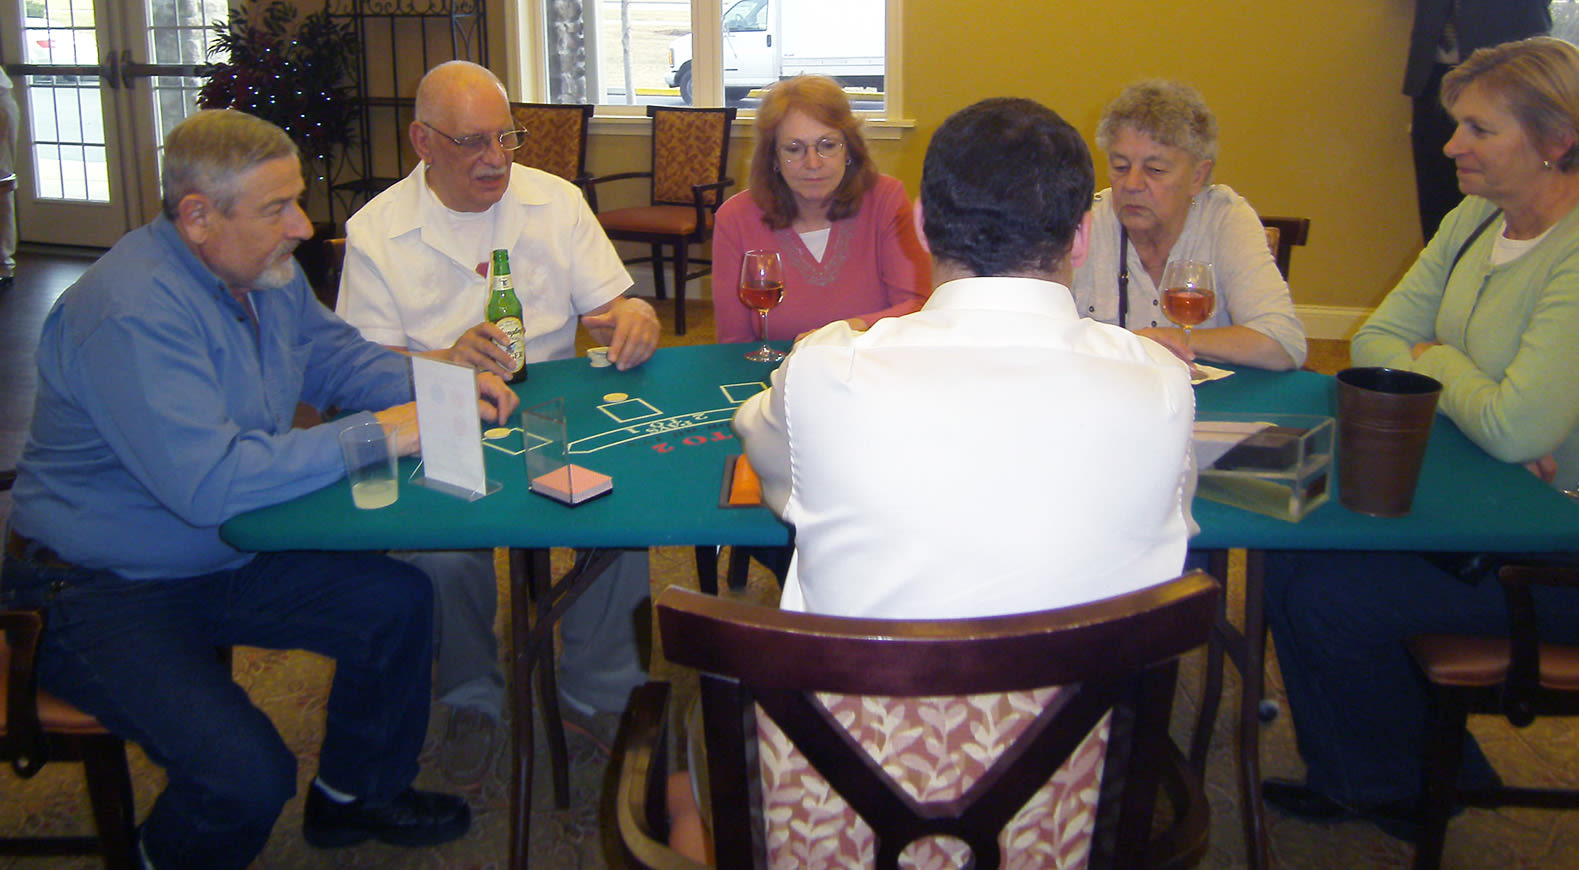 Seniors playing poker at Traditions of Hershey in Palmyra, Pennsylvania